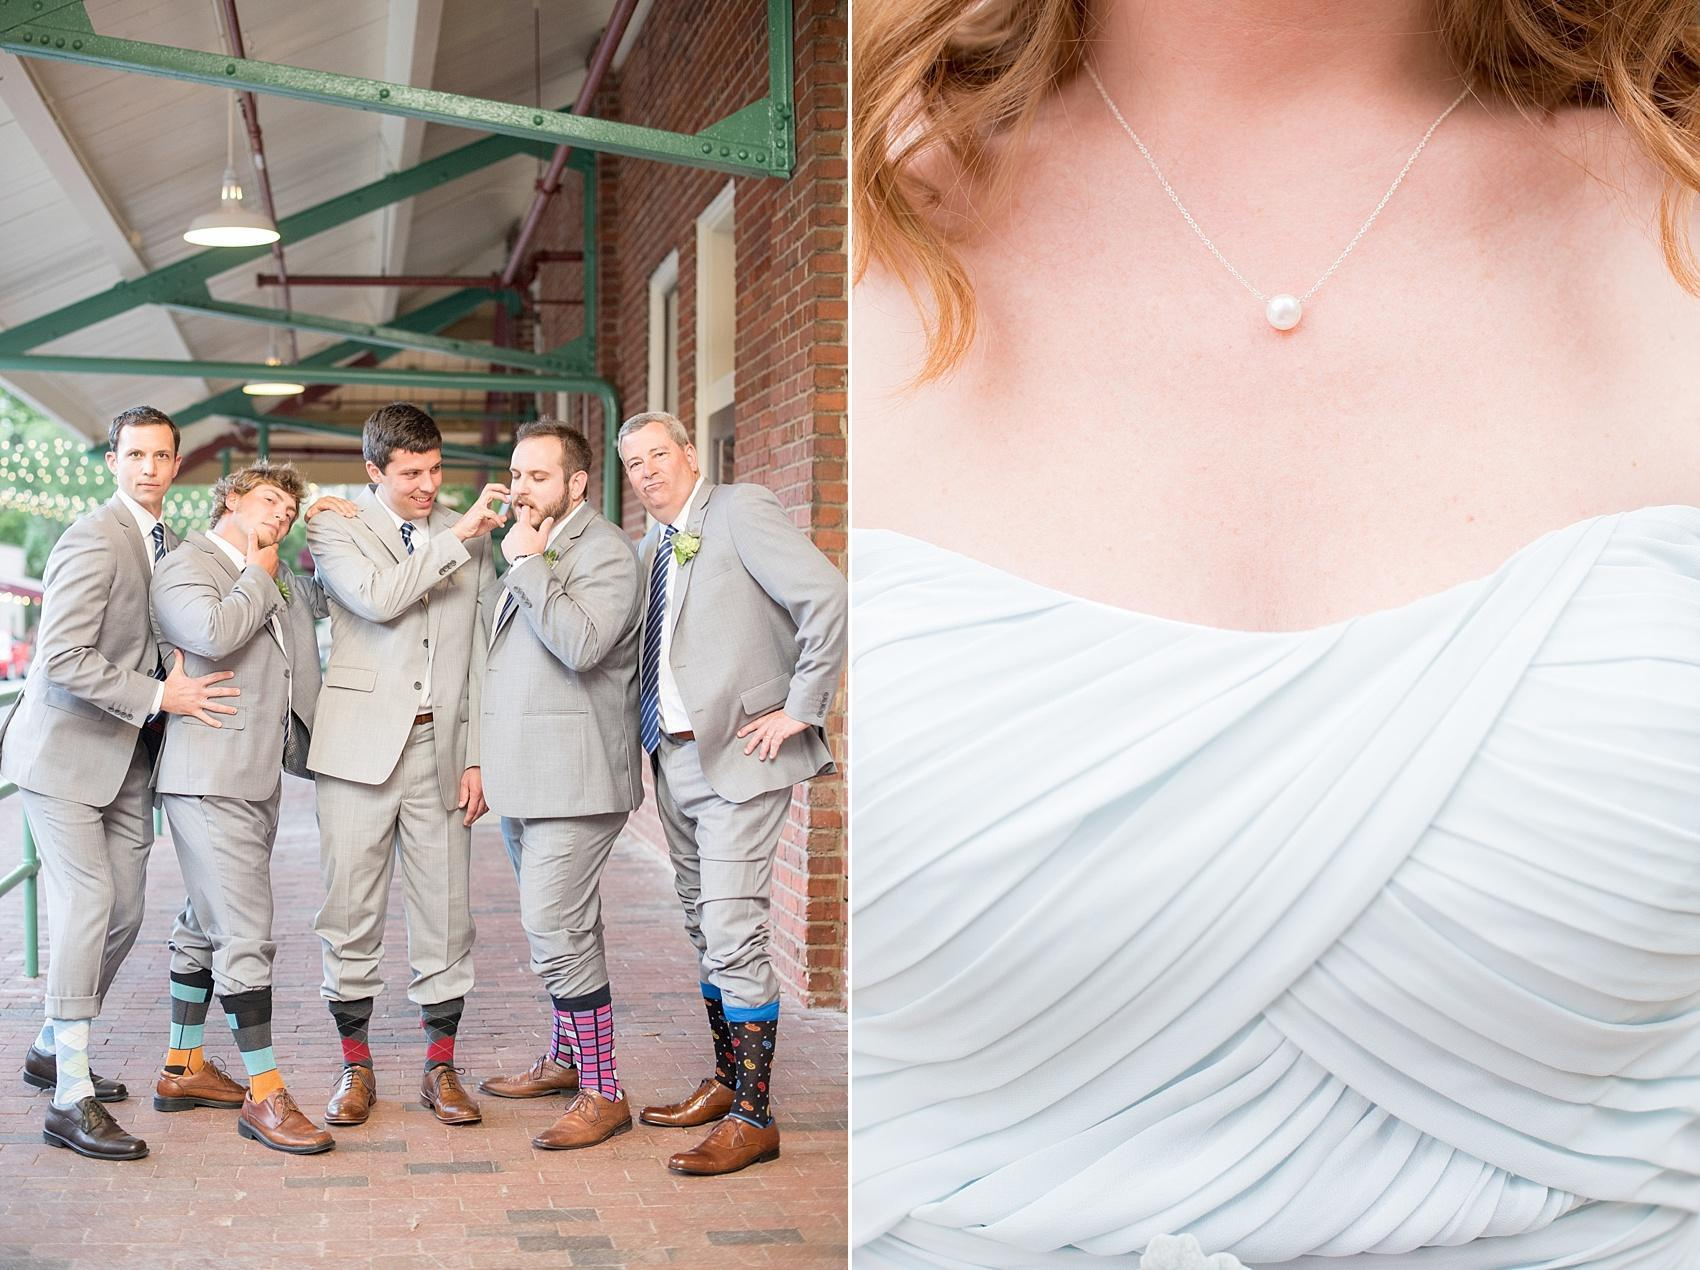 Mikkel Paige Photography photos of a downtown Raleigh Market Hall wedding with pictures of the groomsmen socks and bridesmaid pearl necklace gift.